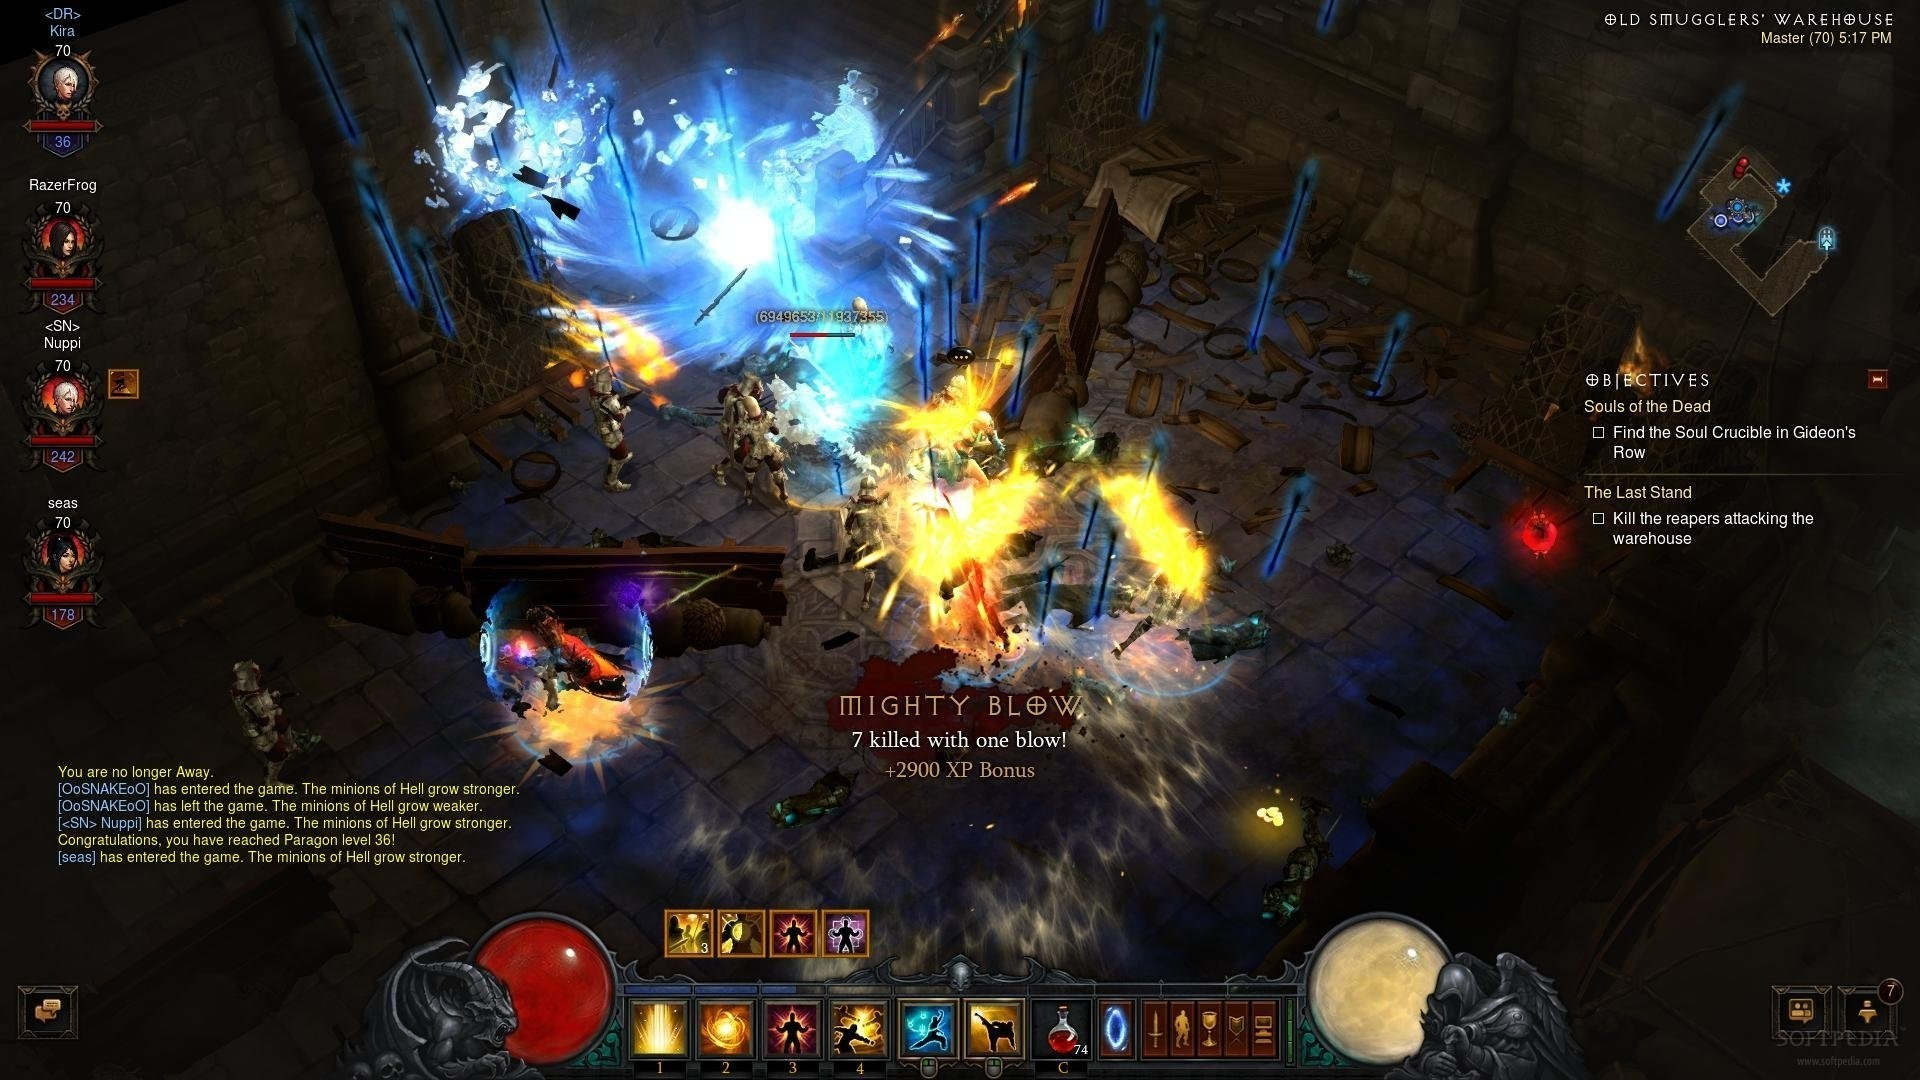 Diablo 3 Gets New Hotfix Update to Solve Damage over Time